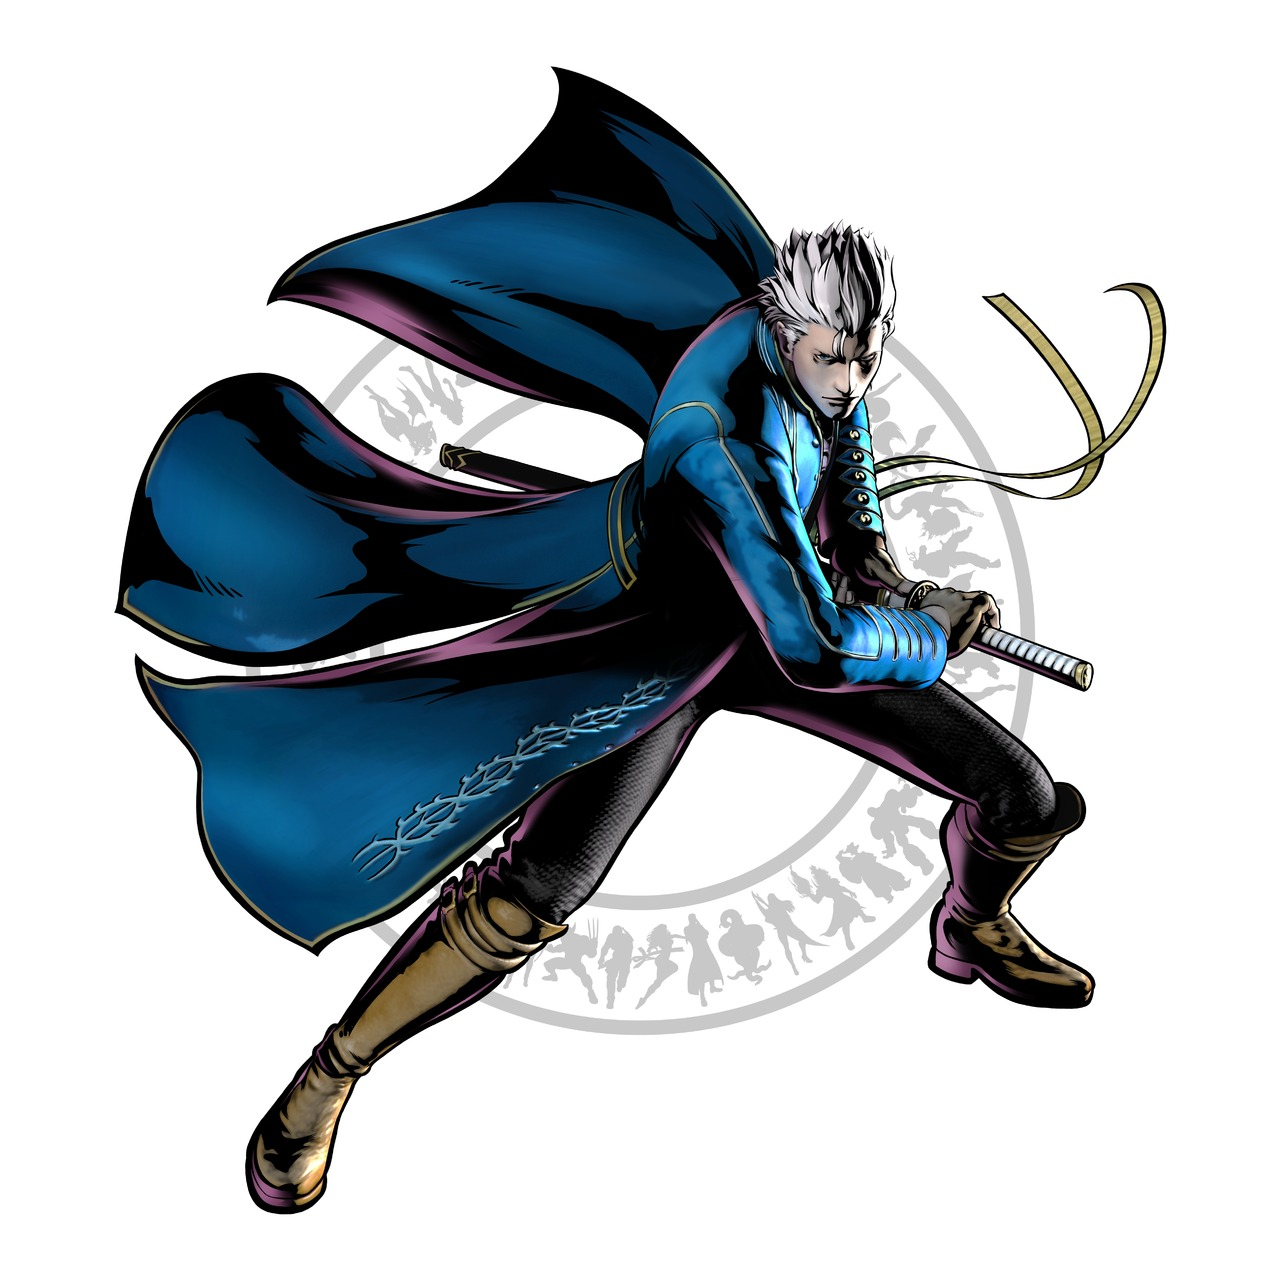 Vergil dans Ultimate Marvel vs. Capcom 3 Ultima11